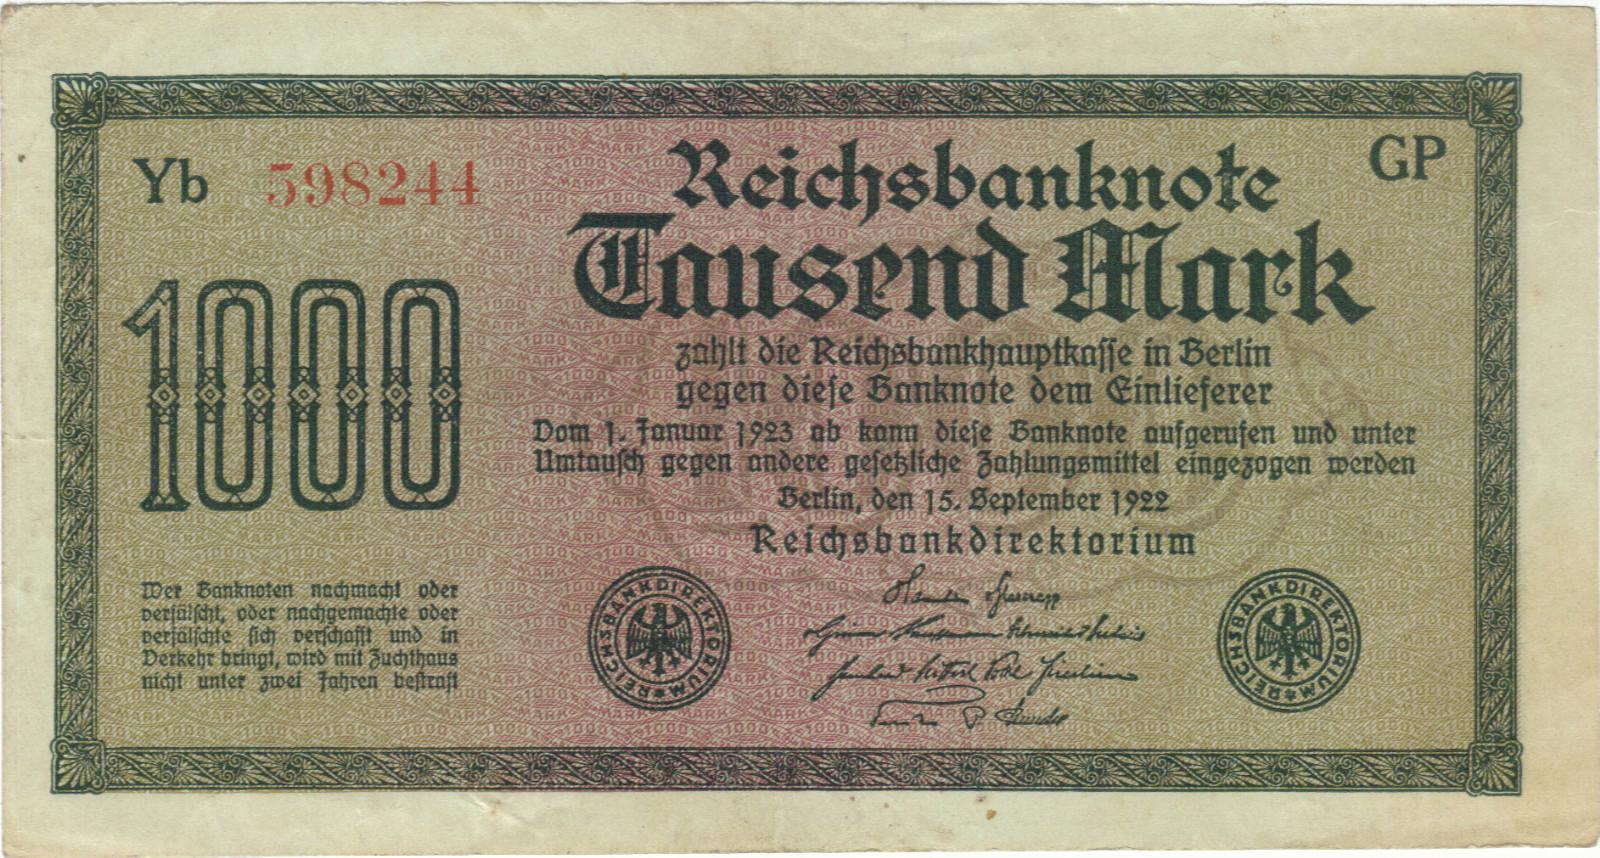 Germany 1000 marks 1922 vf-xf